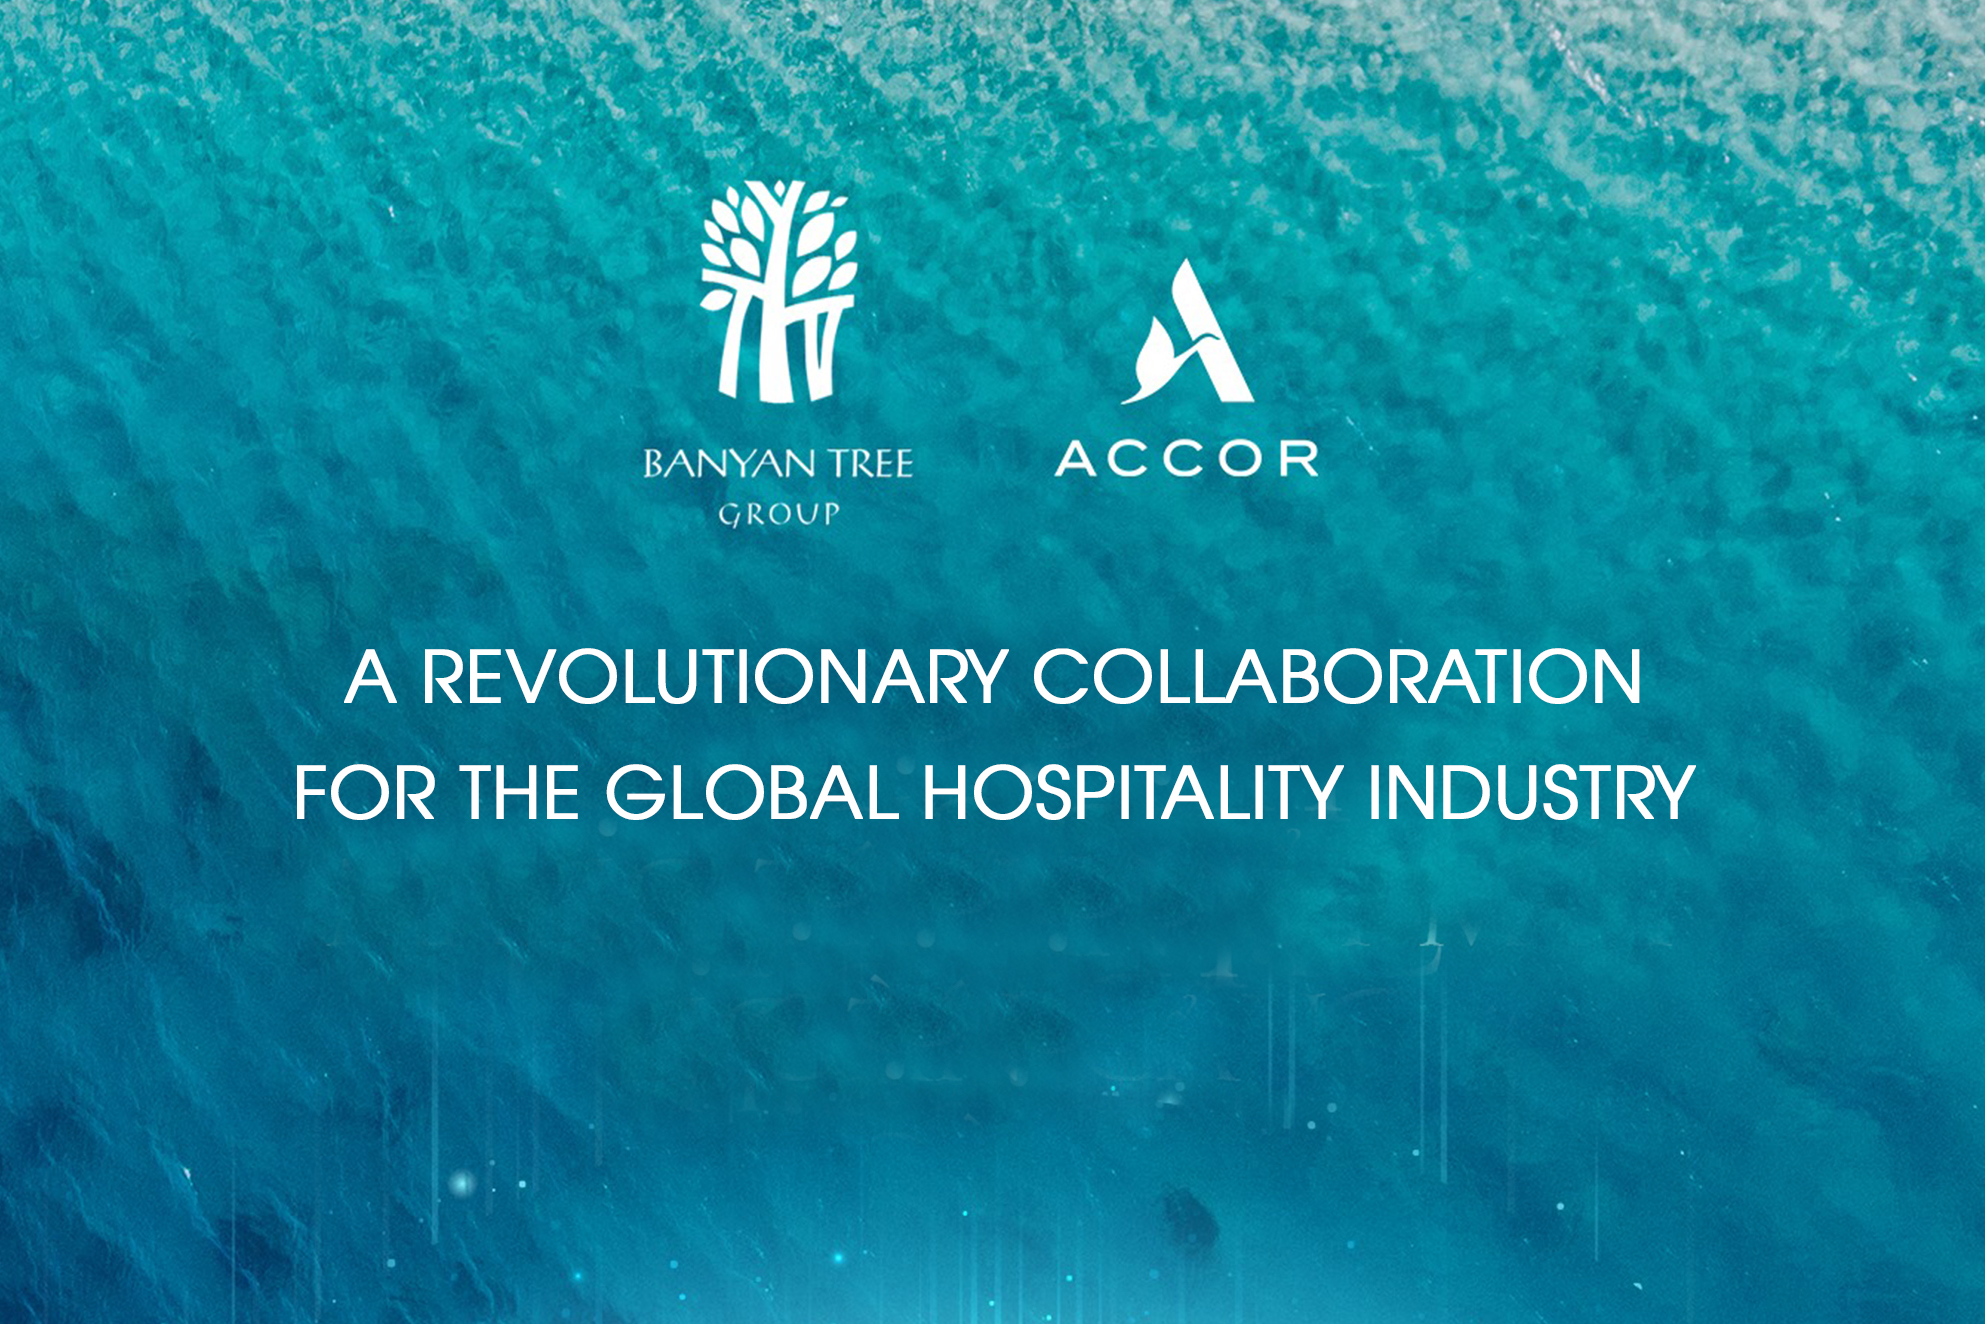 BANYAN TREE GROUP & ACCORHOTELS – A REVOLUTIONARY COLLABORATION FOR THE GLOBAL HOSPITALITY INDUSTRY